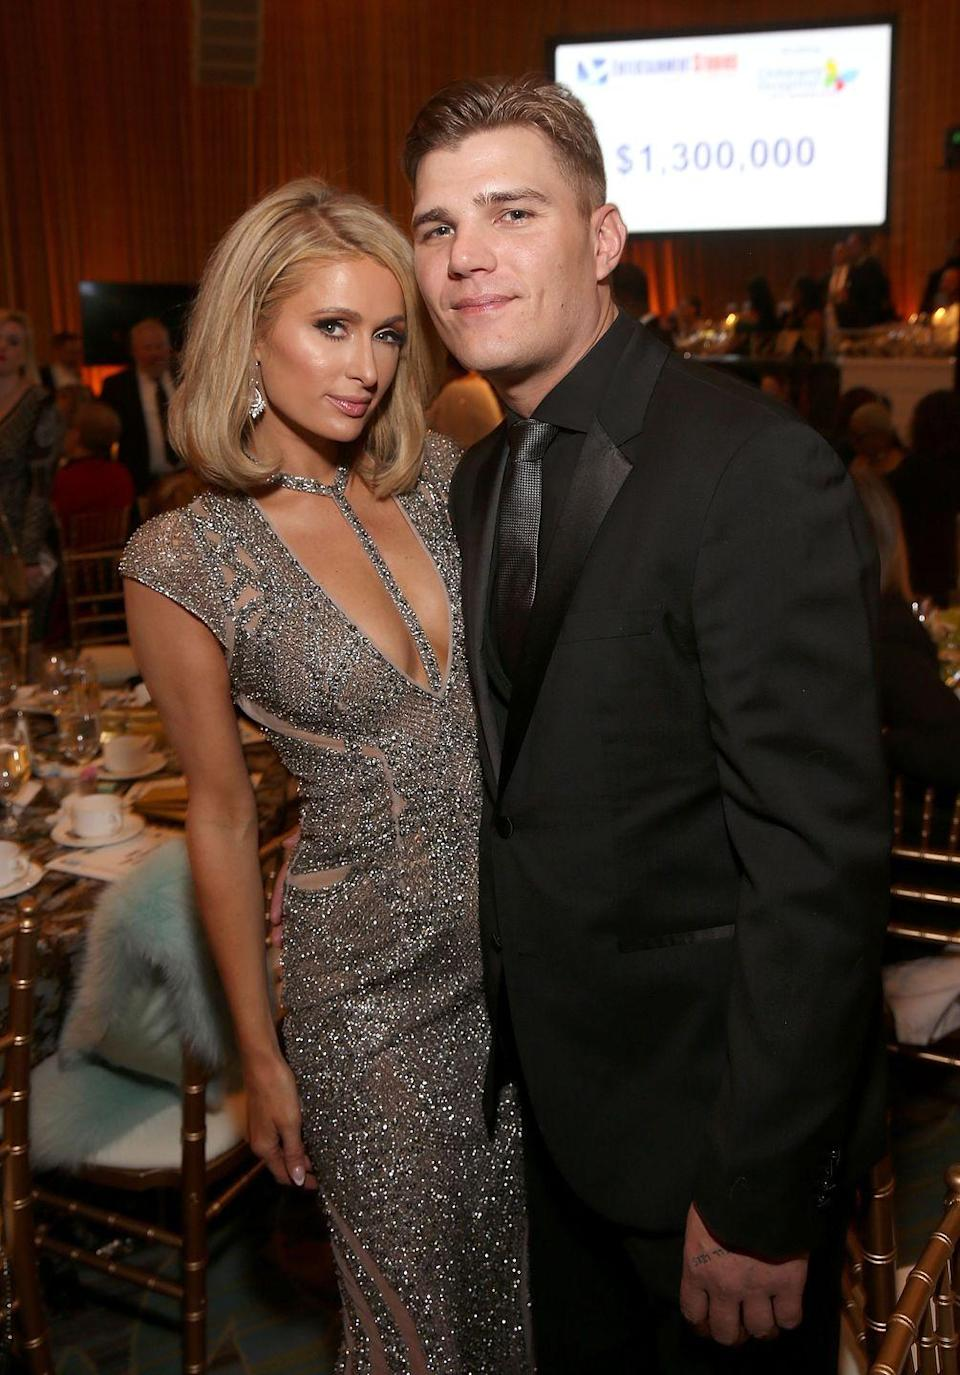 """<p>Nearly a year after the actor proposed to Hilton, they called off their engagement <a href=""""https://people.com/style/paris-hilton-split-fiance-chris-zylka/"""" rel=""""nofollow noopener"""" target=""""_blank"""" data-ylk=""""slk:in November 2018"""" class=""""link rapid-noclick-resp"""">in November 2018</a>. Earlier this year, the socialite told <a href=""""https://www.cosmopolitan.com/uk/entertainment/a31036334/paris-hilton-cosmopolitan-uk-april-cover/"""" rel=""""nofollow noopener"""" target=""""_blank"""" data-ylk=""""slk:Cosmopolitan UK"""" class=""""link rapid-noclick-resp""""><em>Cosmopolitan UK</em></a> that ending things with Zylka was """"the best decision I've ever made in my life."""" She added, """"I just don't think [he] was the right person, and I feel like I'm an incredible woman and I deserve someone so amazing.""""</p>"""